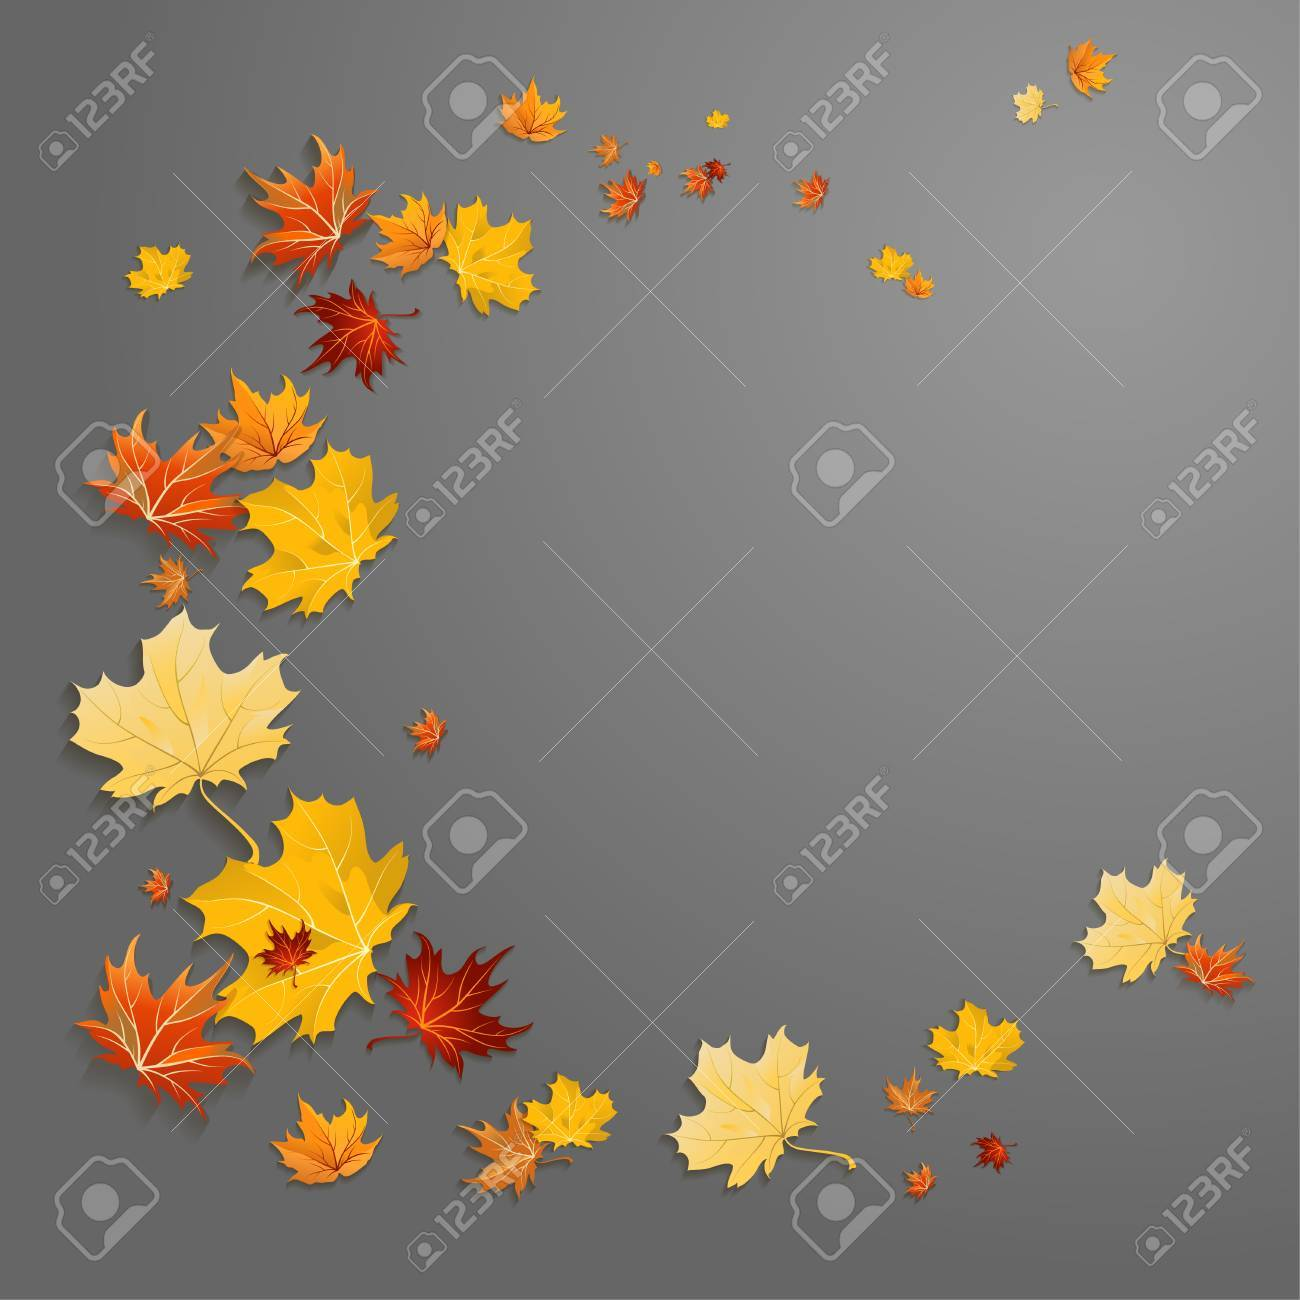 Abstract leaves background on dark background with place for text. - 32770377